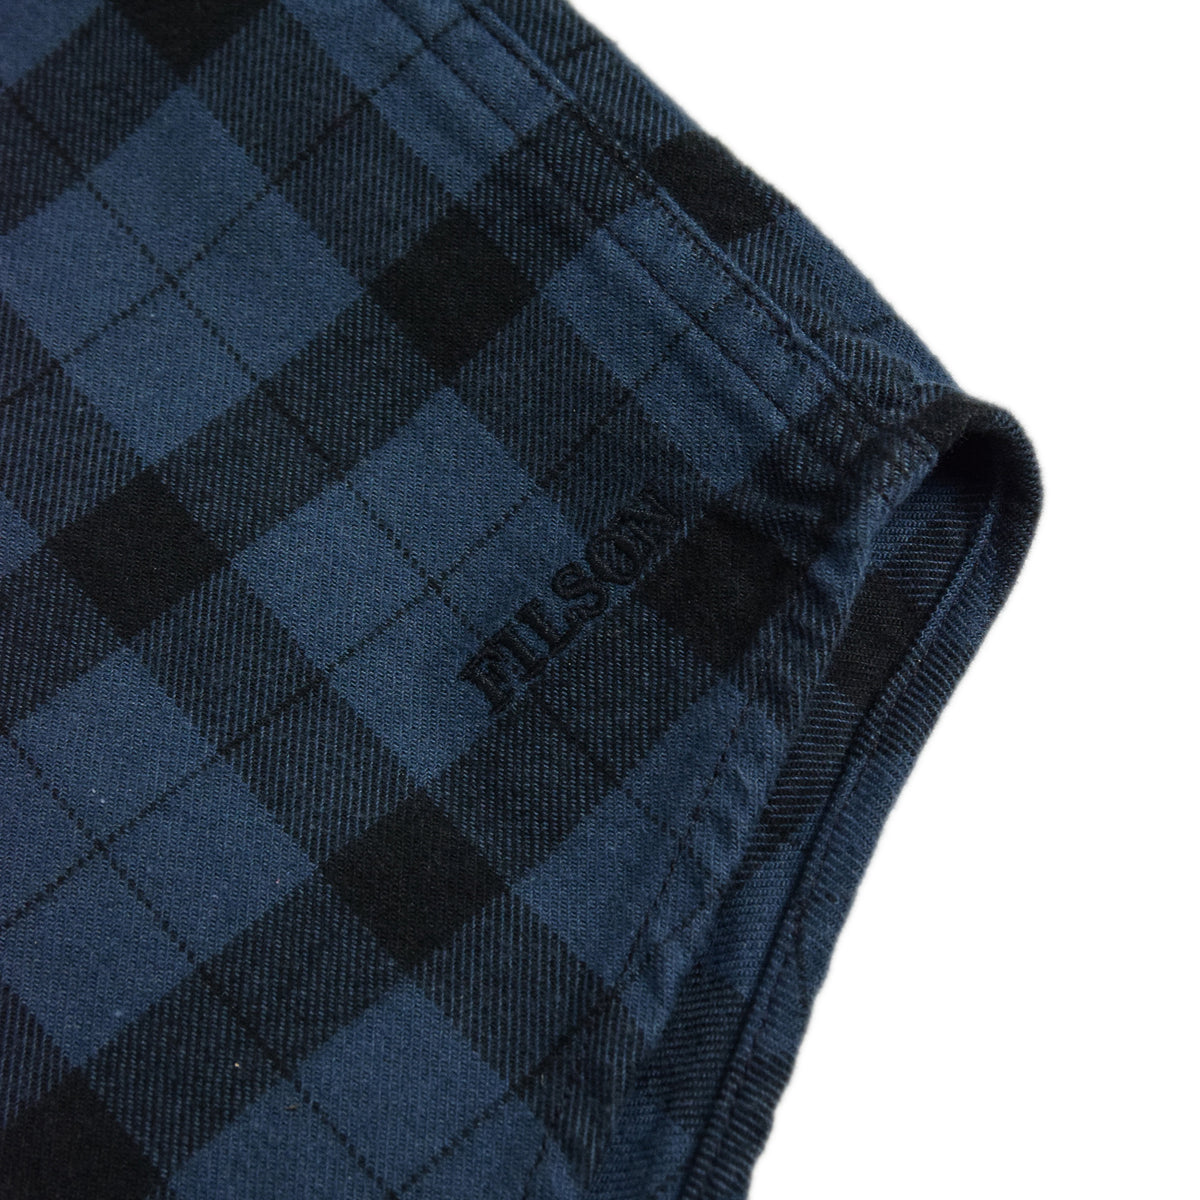 Filson Alaskan Guide Cotton Flannel Shirt Blue/Black Seam